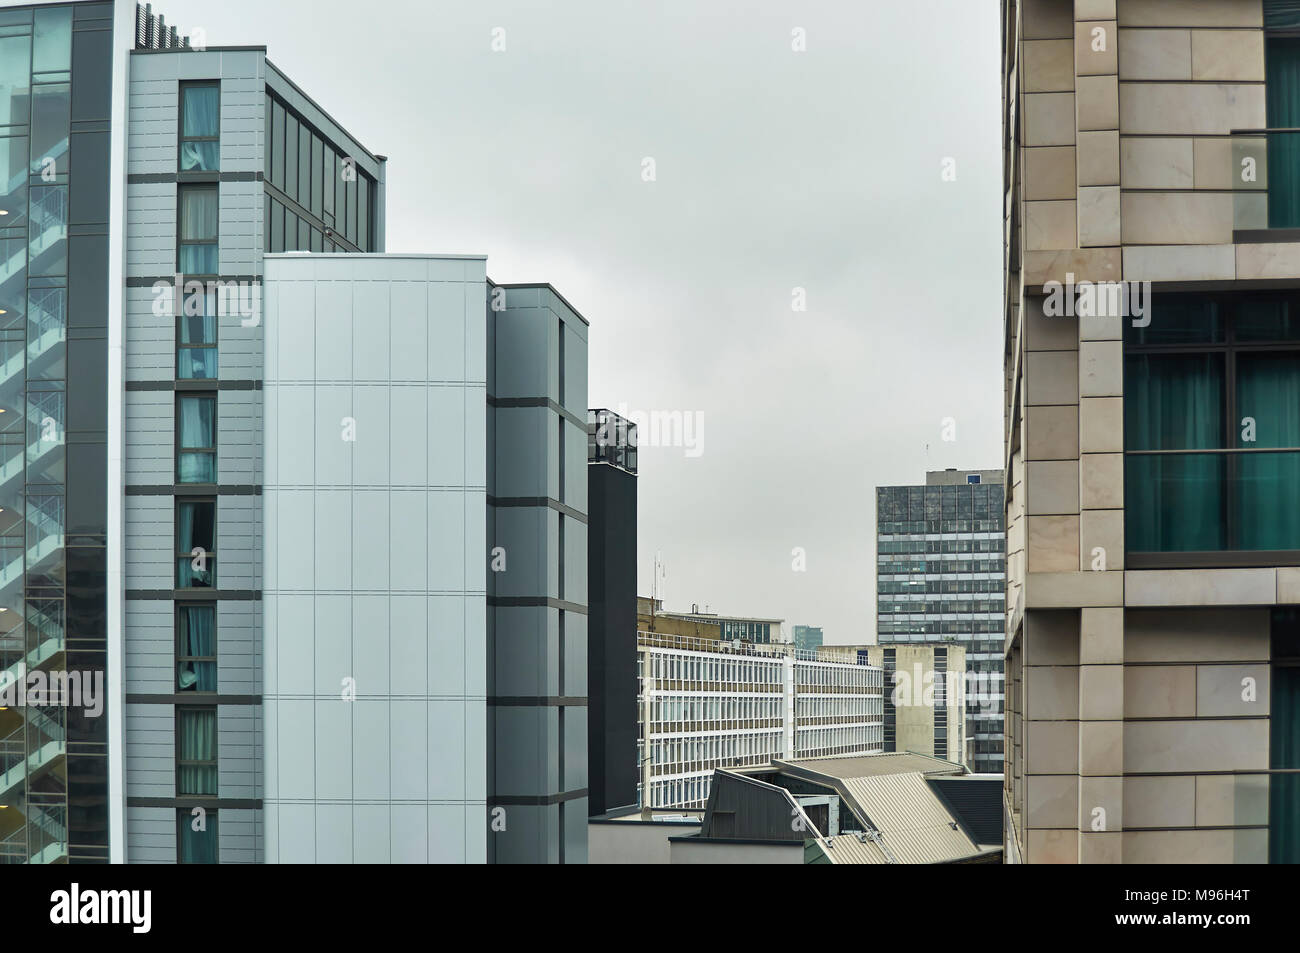 Some of the brutally modernistic rectangular Skyline in parts of Westminster in London, England - Stock Image